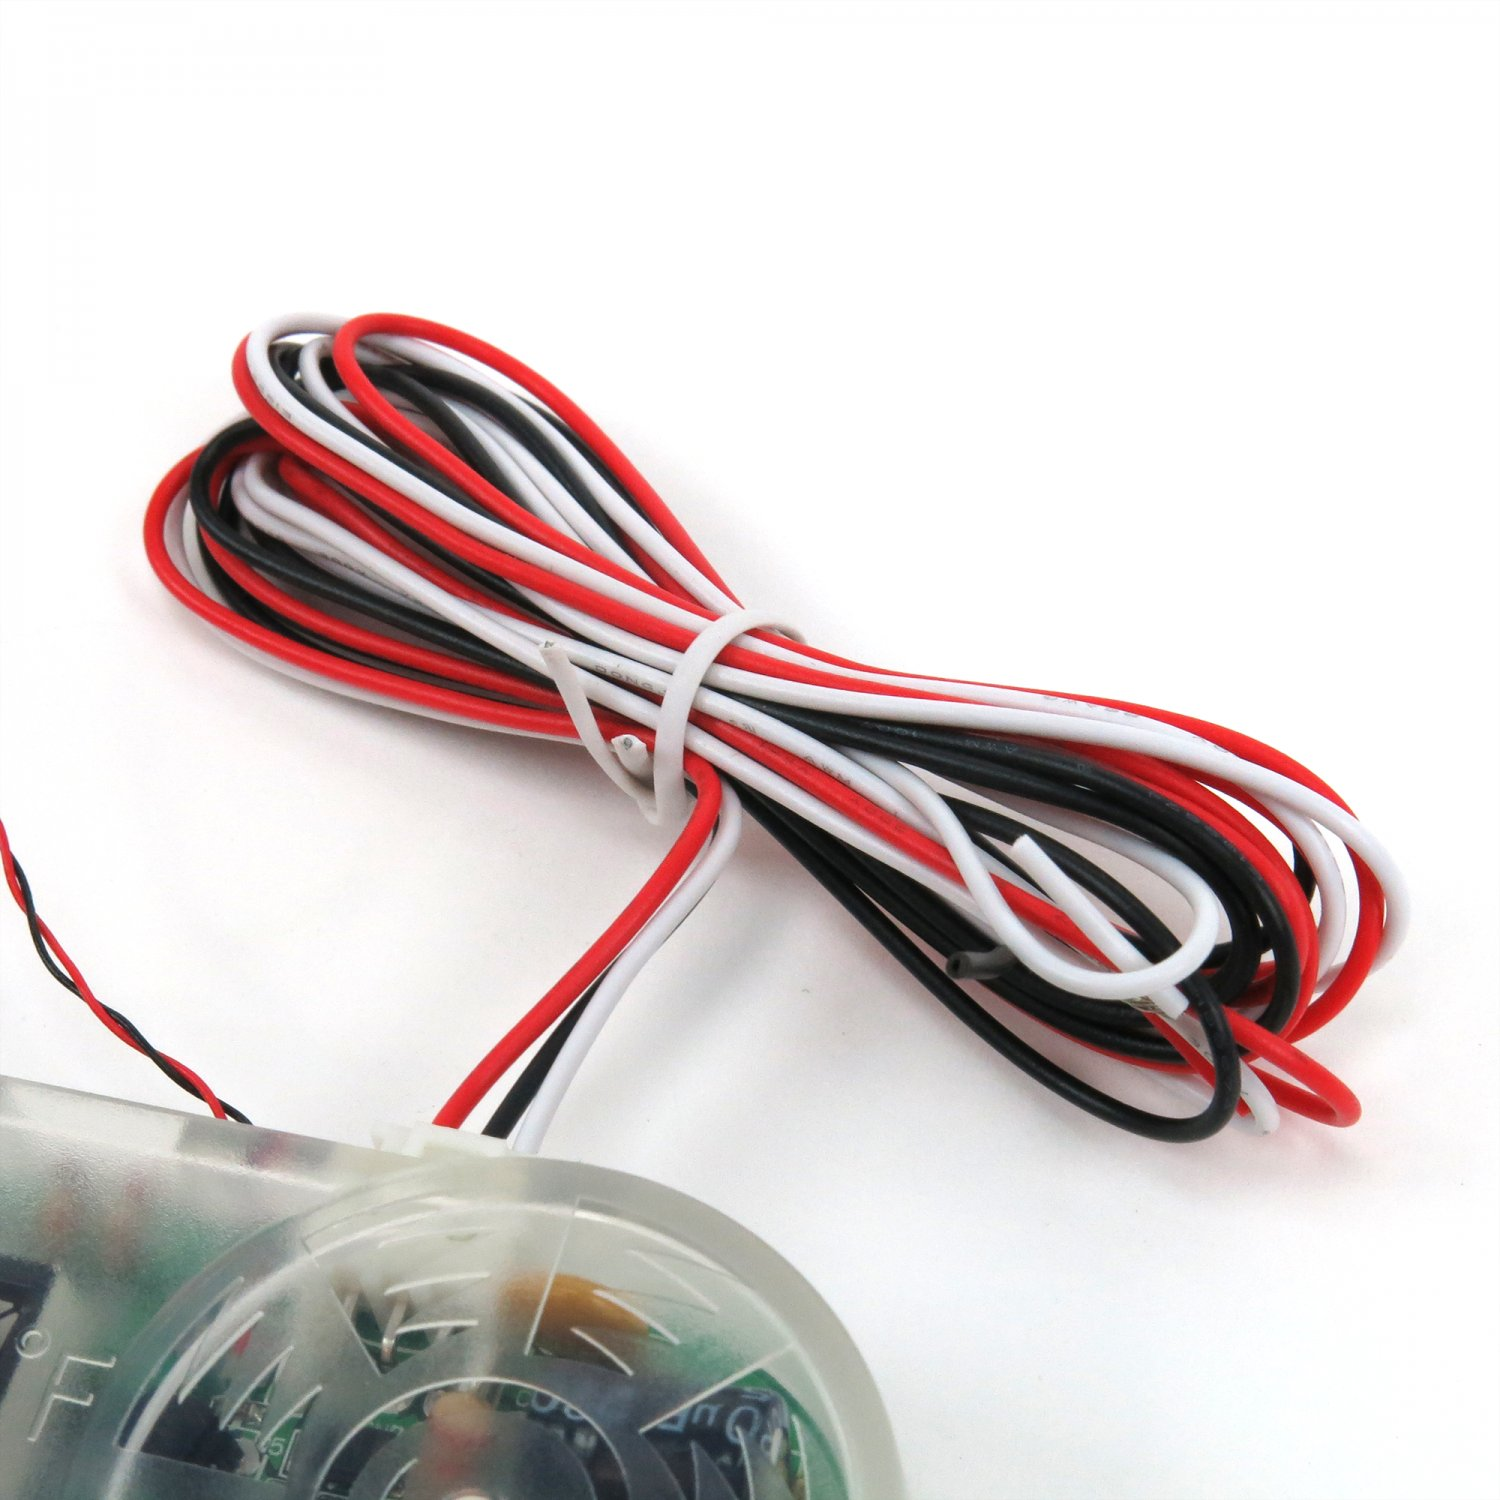 Digital adjustable temp control switch with thread in